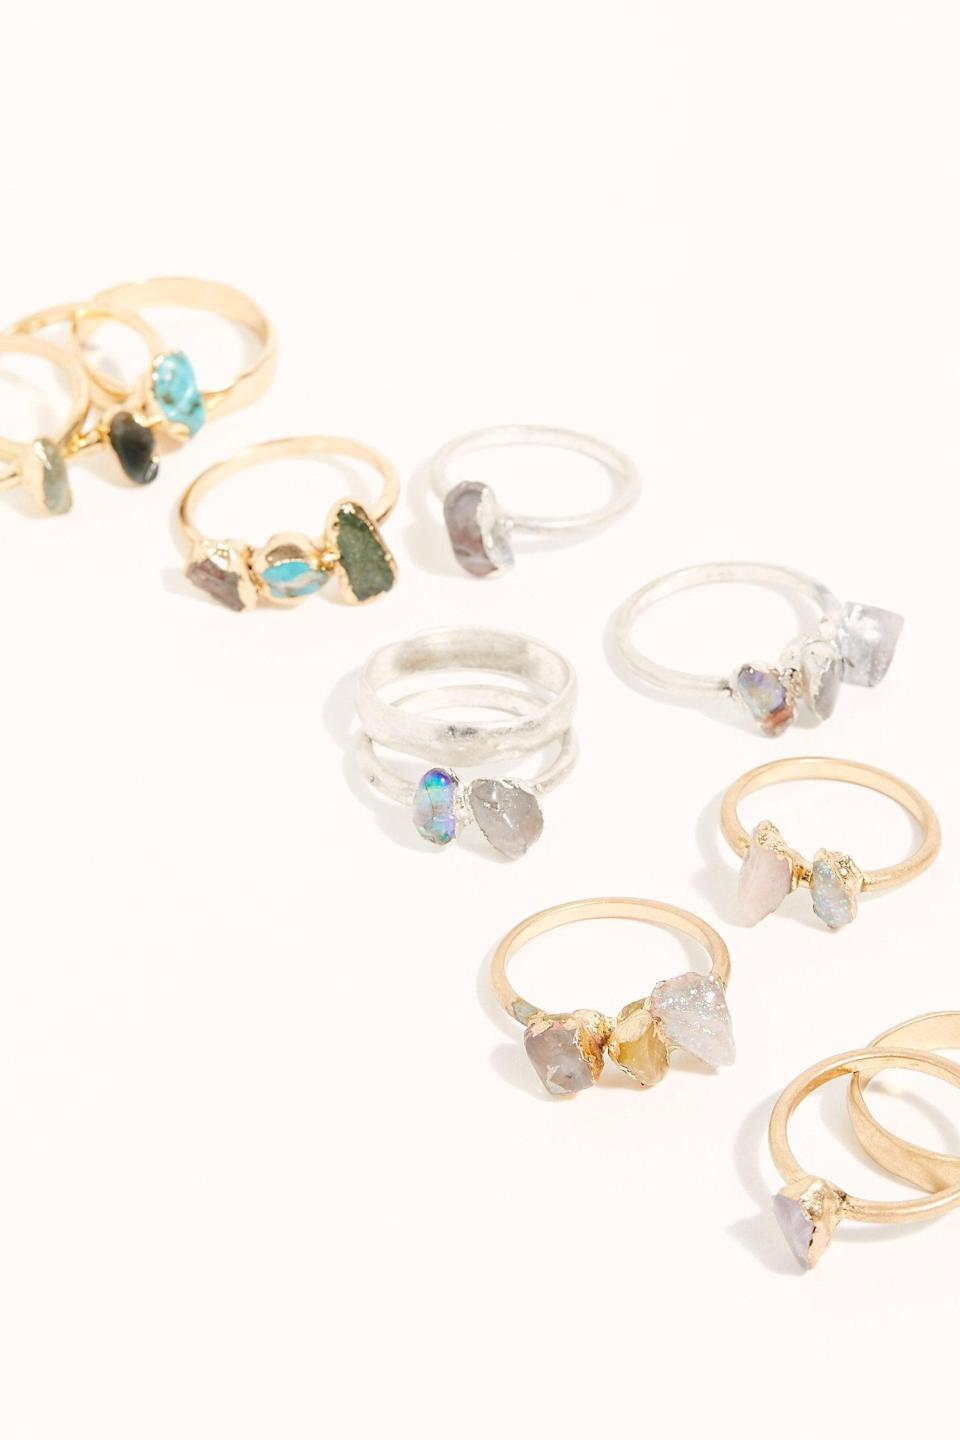 """<p>They'll love rocking all the choices in this <a href=""""https://www.popsugar.com/buy/Raw-Stone-Ring-Set-516225?p_name=Raw%20Stone%20Ring%20Set&retailer=freepeople.com&pid=516225&price=38&evar1=savvy%3Aus&evar9=45472903&evar98=https%3A%2F%2Fwww.popsugar.com%2Fsmart-living%2Fphoto-gallery%2F45472903%2Fimage%2F46937690%2FRaw-Stone-Ring-Set&list1=gifts%2Choliday%2Cstocking%20stuffers%2Cgift%20guide%2Cgifts%20under%20%24100%2Cgifts%20under%20%2450%2Cgifts%20under%20%2475&prop13=mobile&pdata=1"""" class=""""link rapid-noclick-resp"""" rel=""""nofollow noopener"""" target=""""_blank"""" data-ylk=""""slk:Raw Stone Ring Set"""">Raw Stone Ring Set</a> ($38).</p>"""